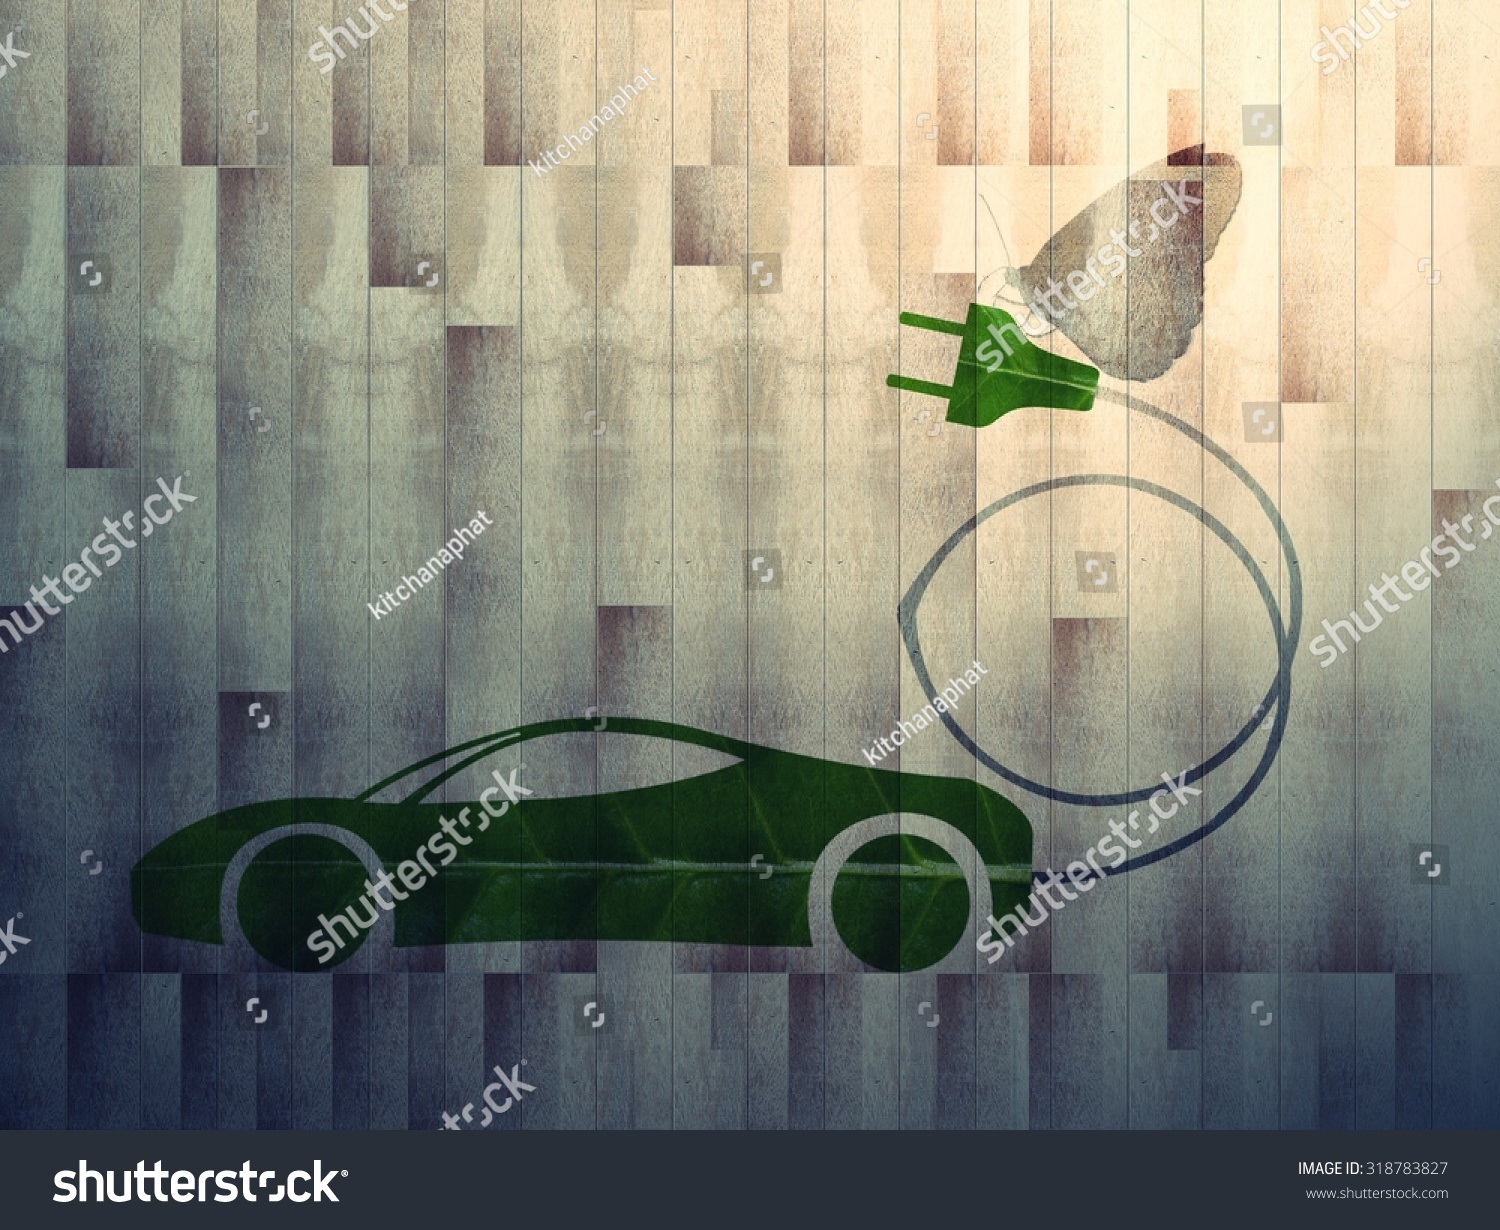 Royalty Free Green Leaf With A Cut Out Car Symbol On 318783827